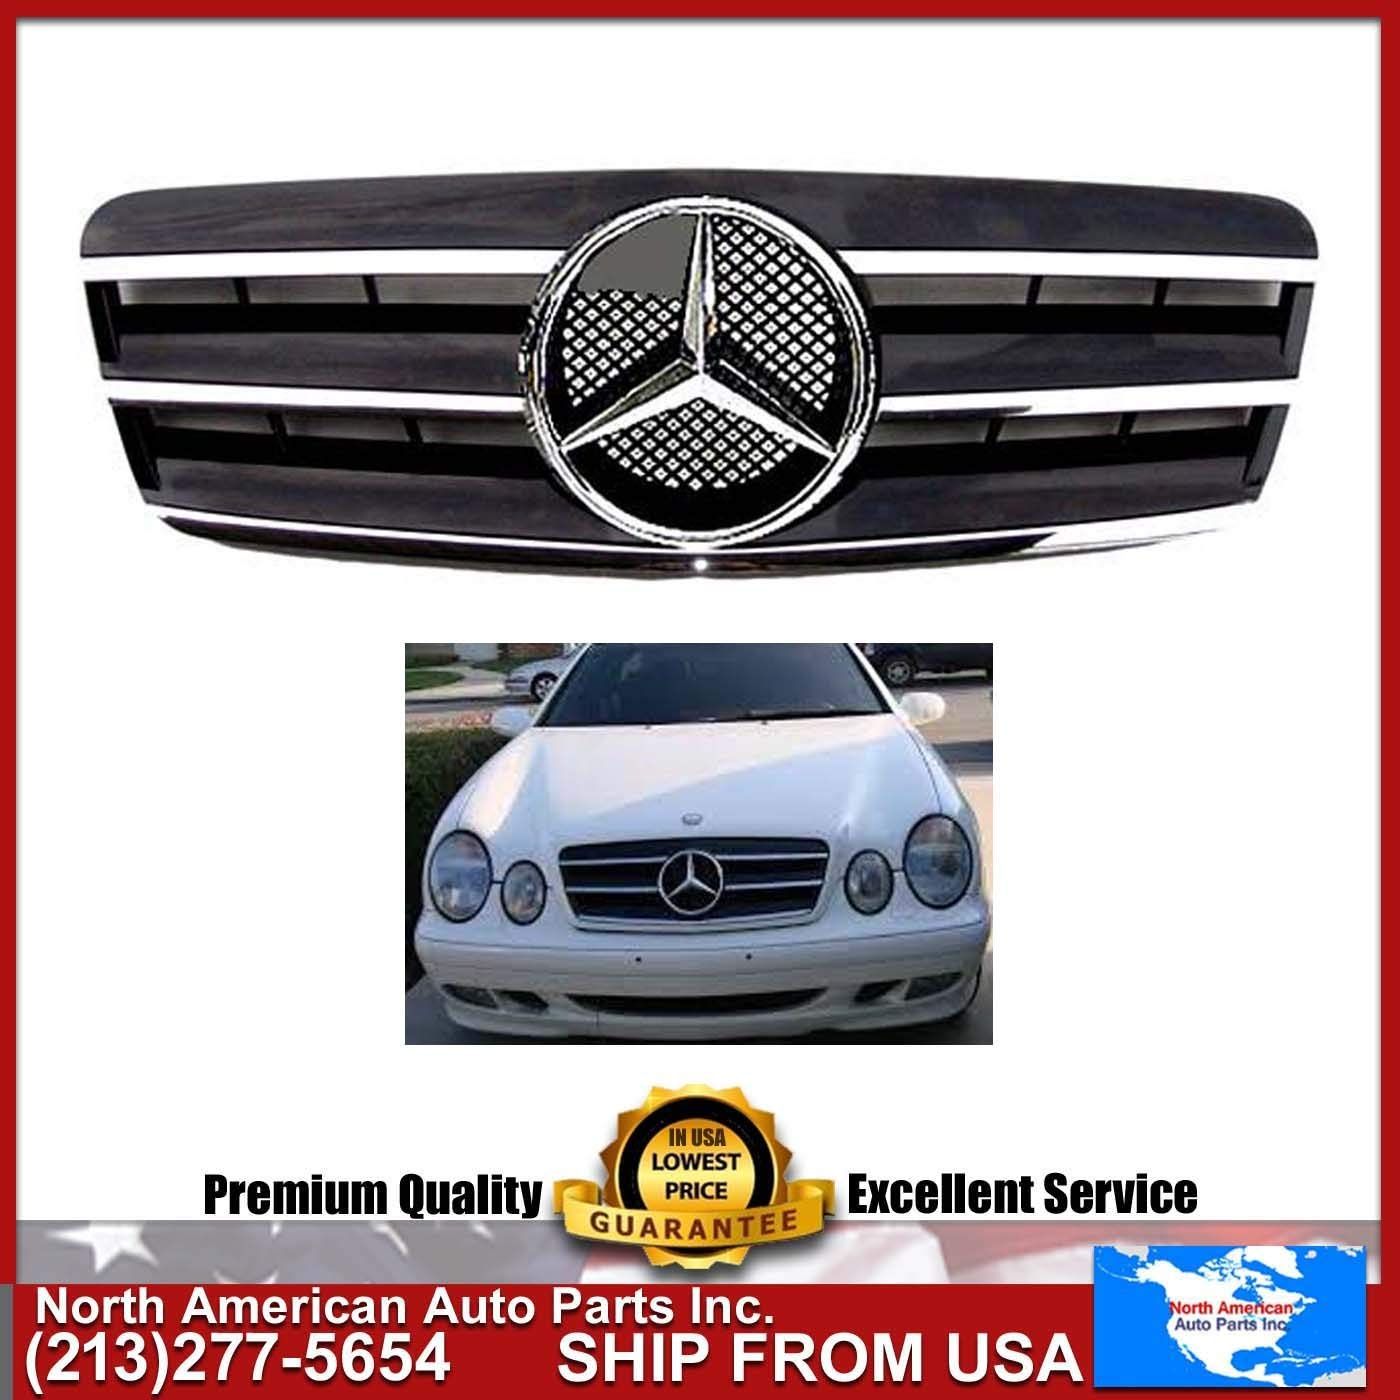 Cheap Benz 320 Clk Find Deals On Line At Alibabacom 1999 Ml430 Fuel Filter Get Quotations Mercedes 98 02 W208 Black Chrome Grille Star Amg Clk320 Clk430 Emblem